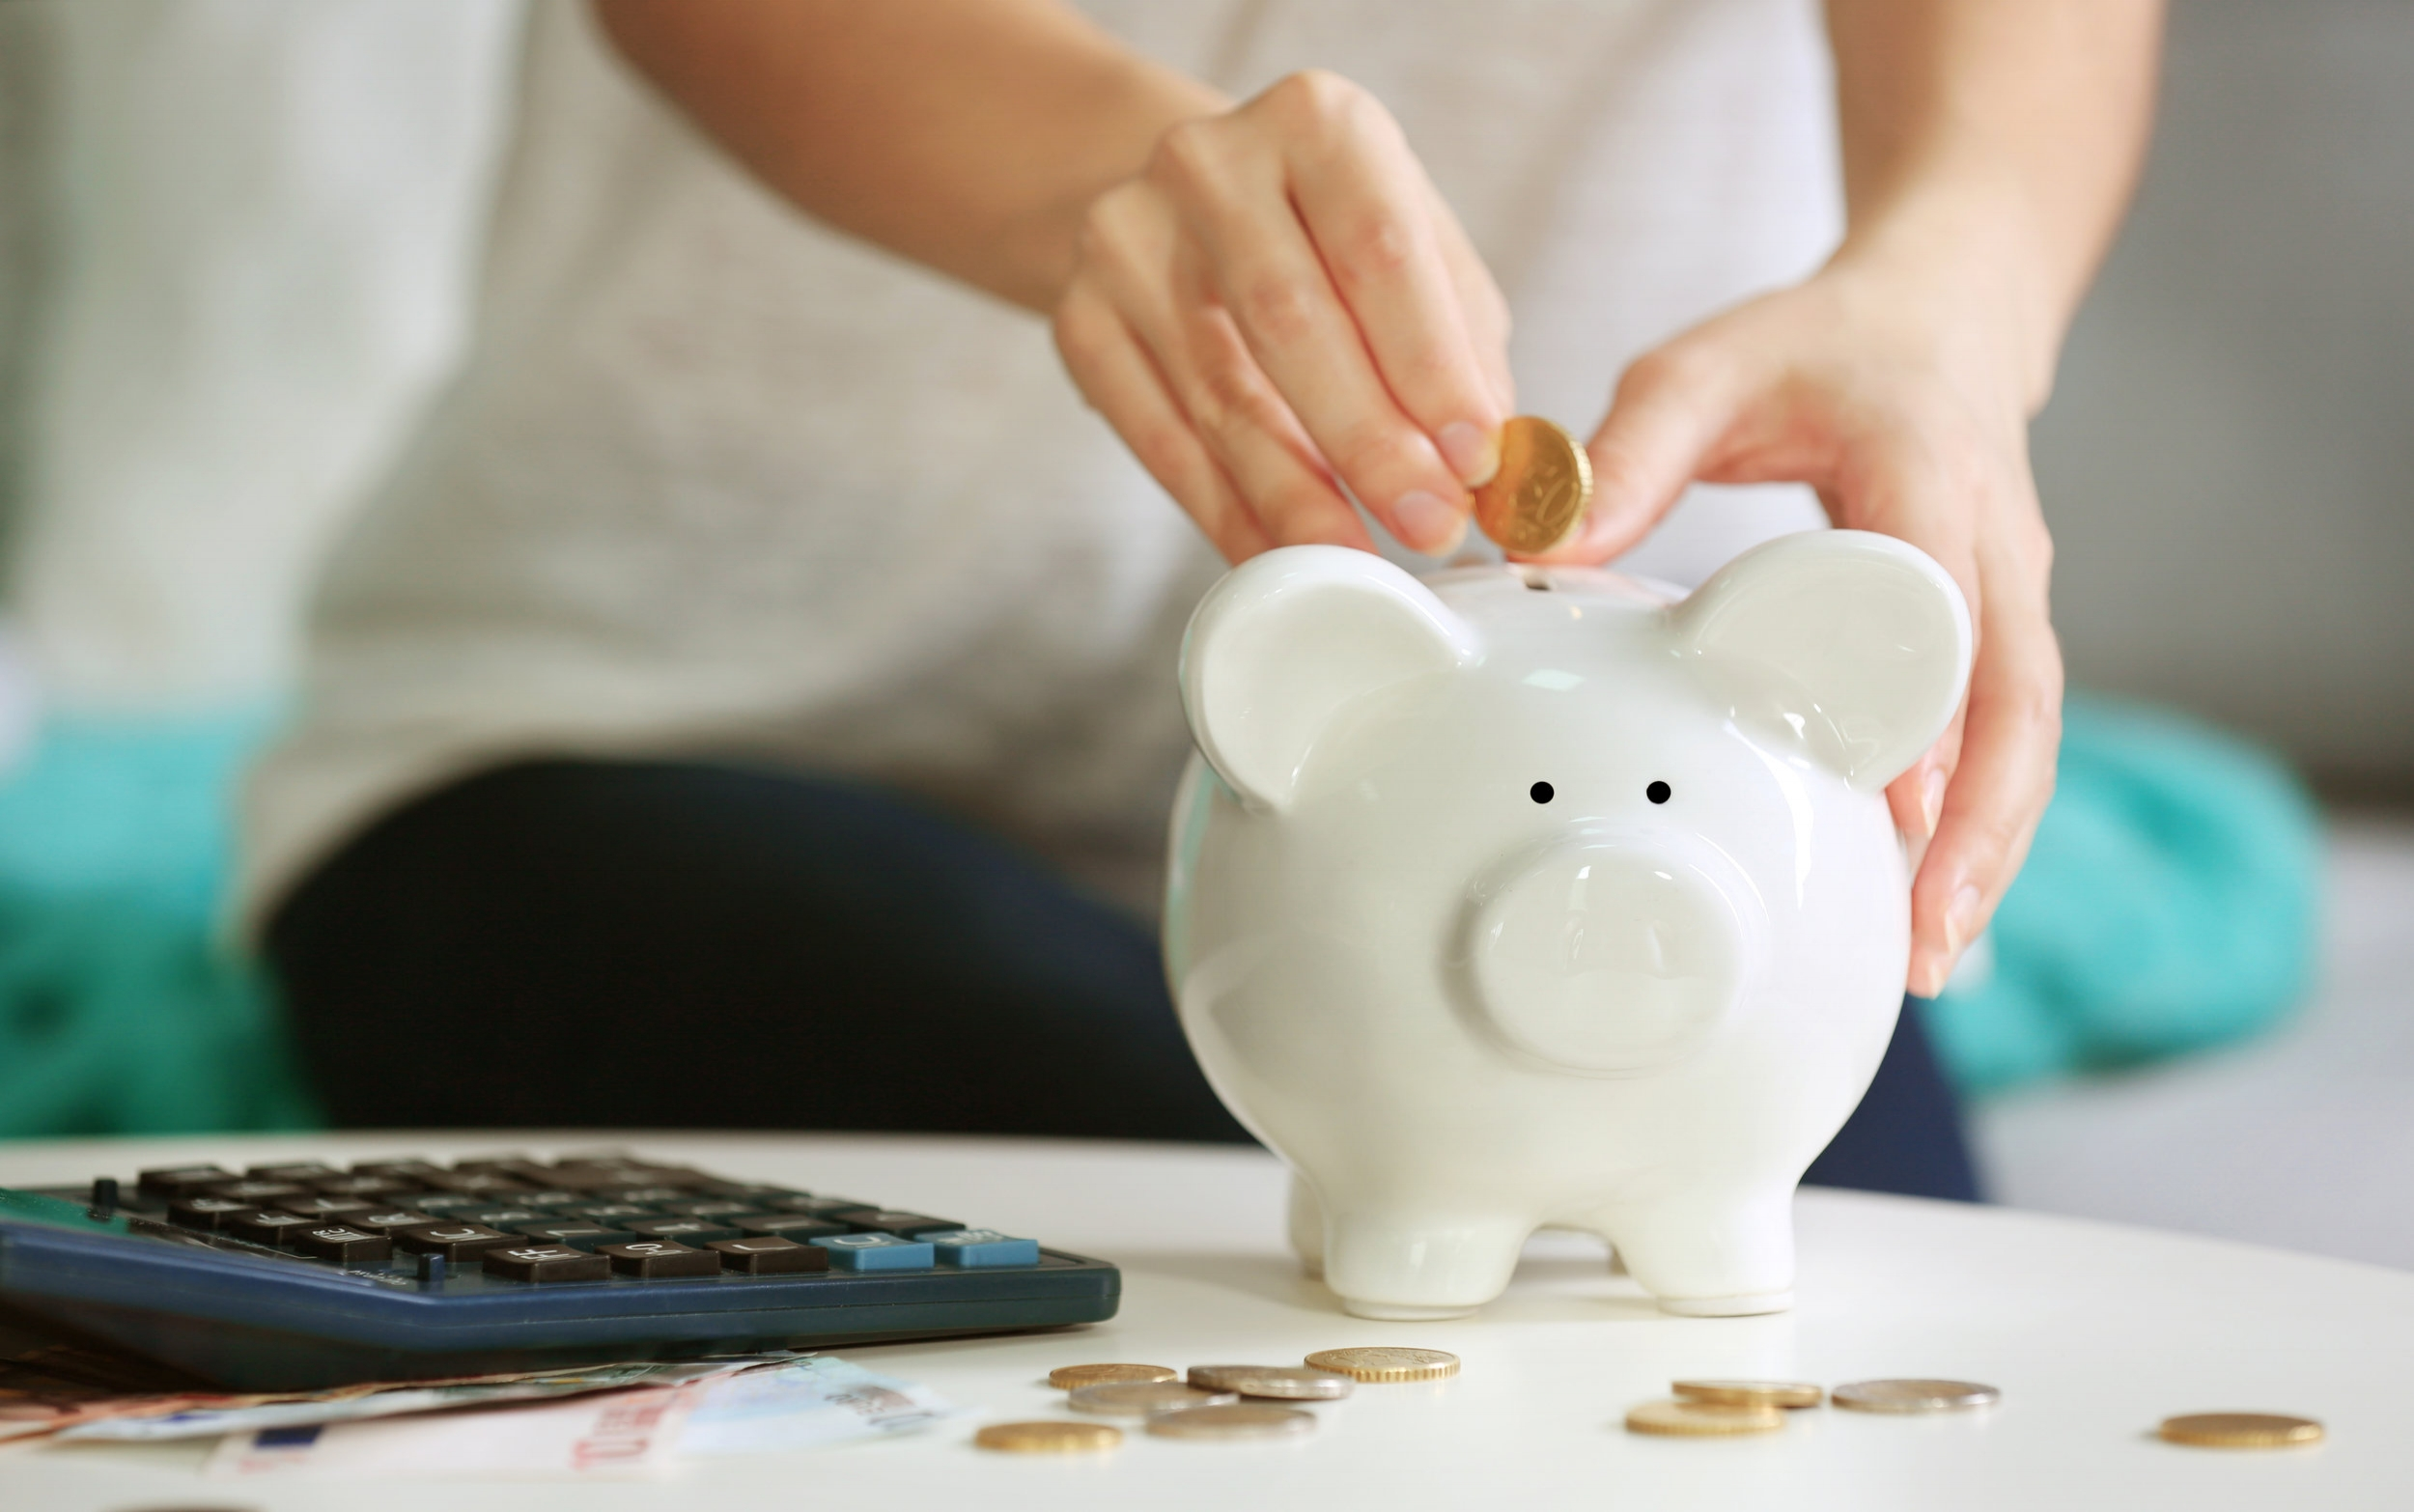 Financial Literacy - A focus of understanding credit, avoiding debt and saving money